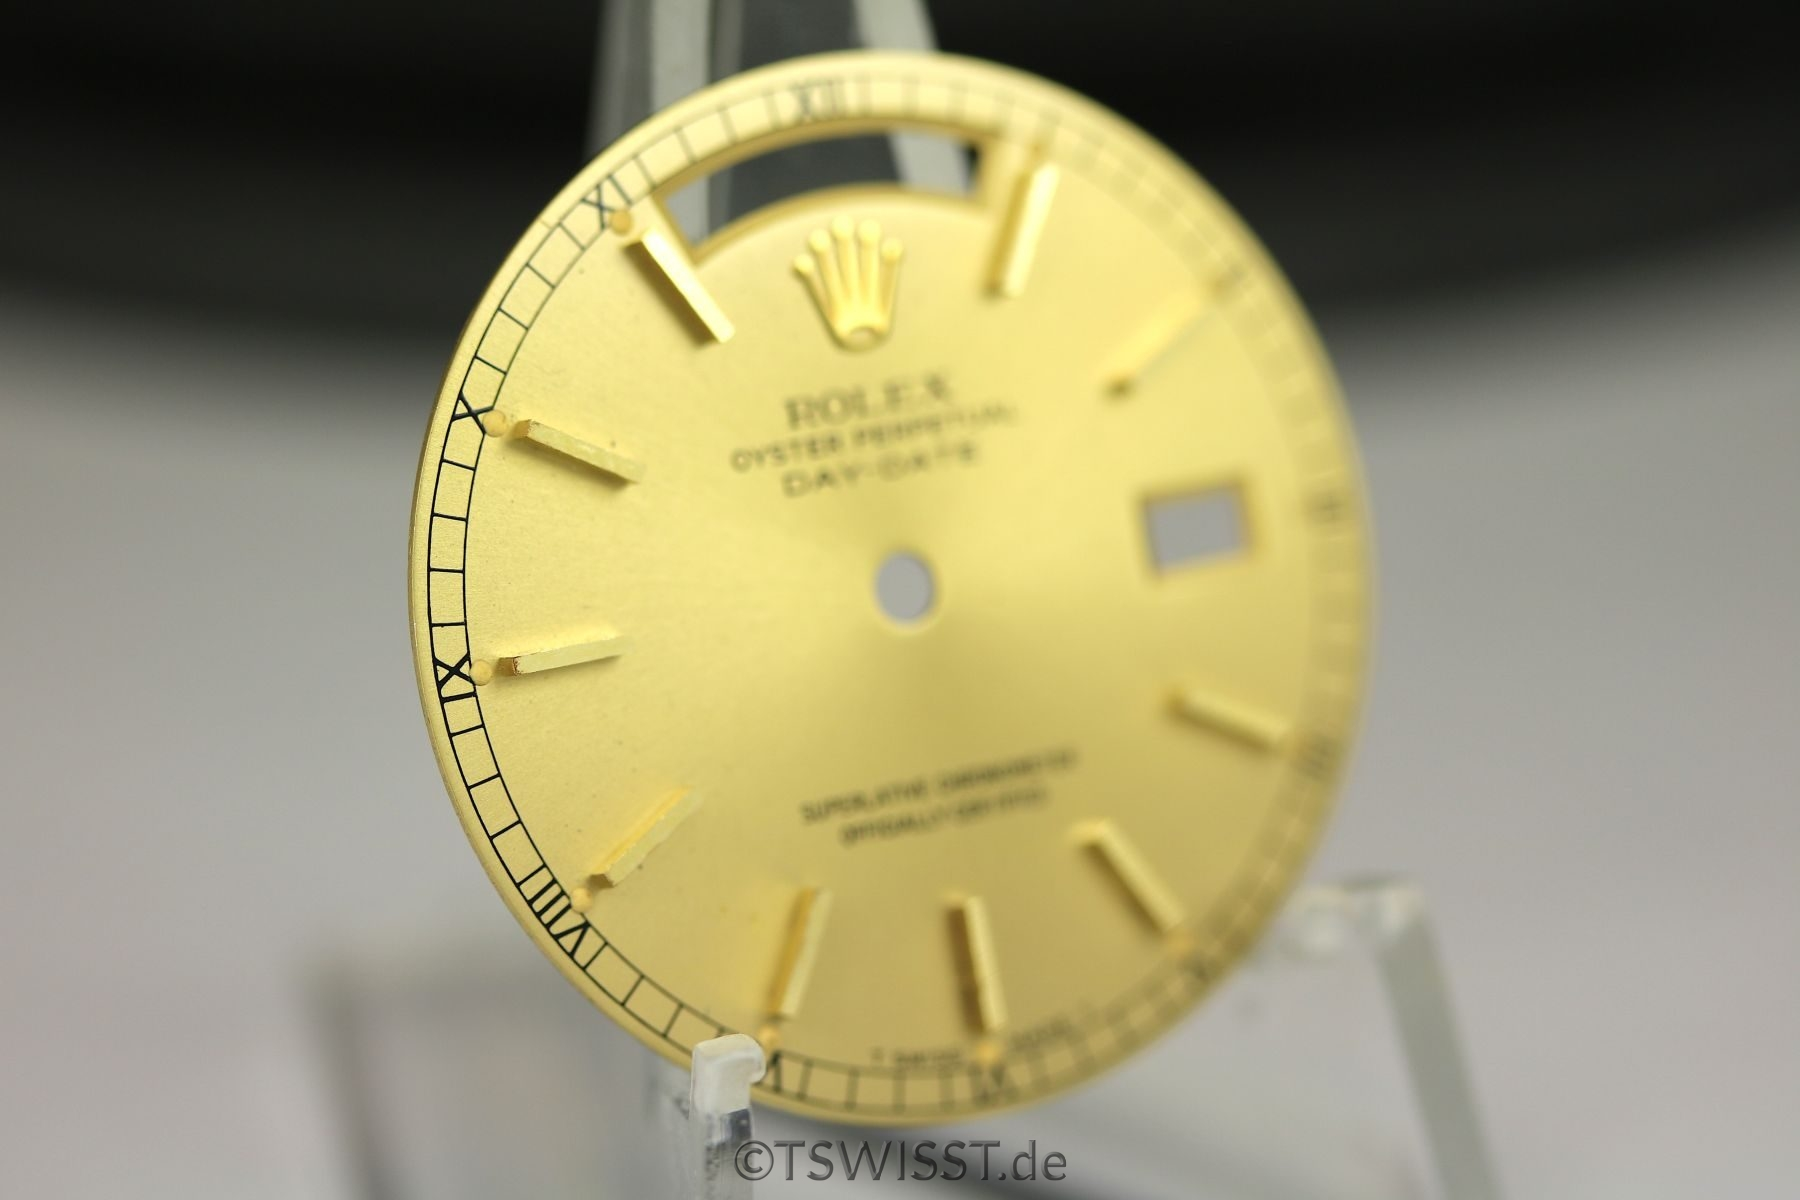 Rolex Day-date champagne dial